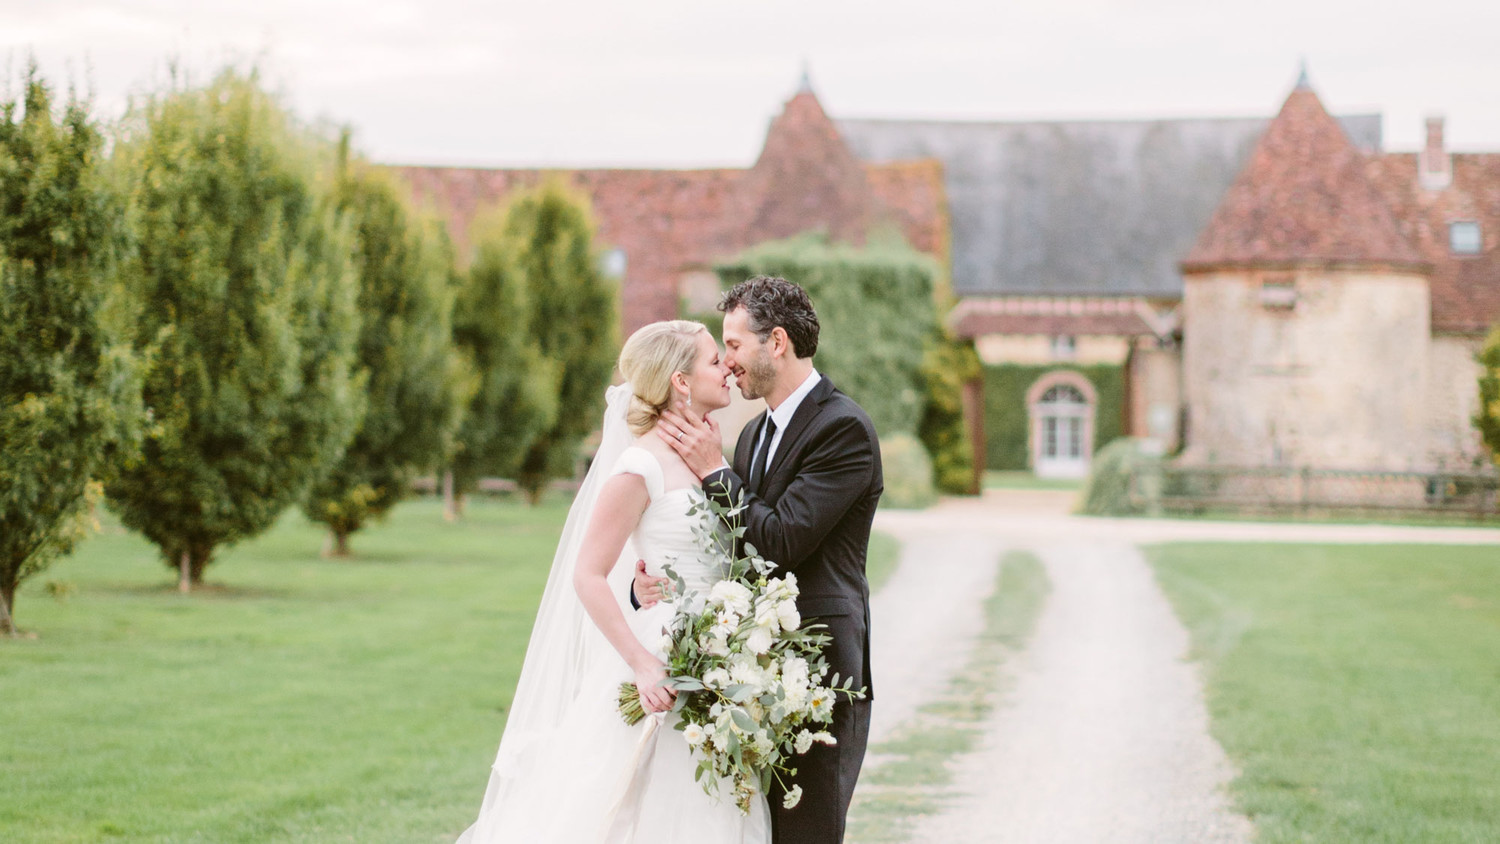 An Elegant, Intimate Wedding In The French Countryside